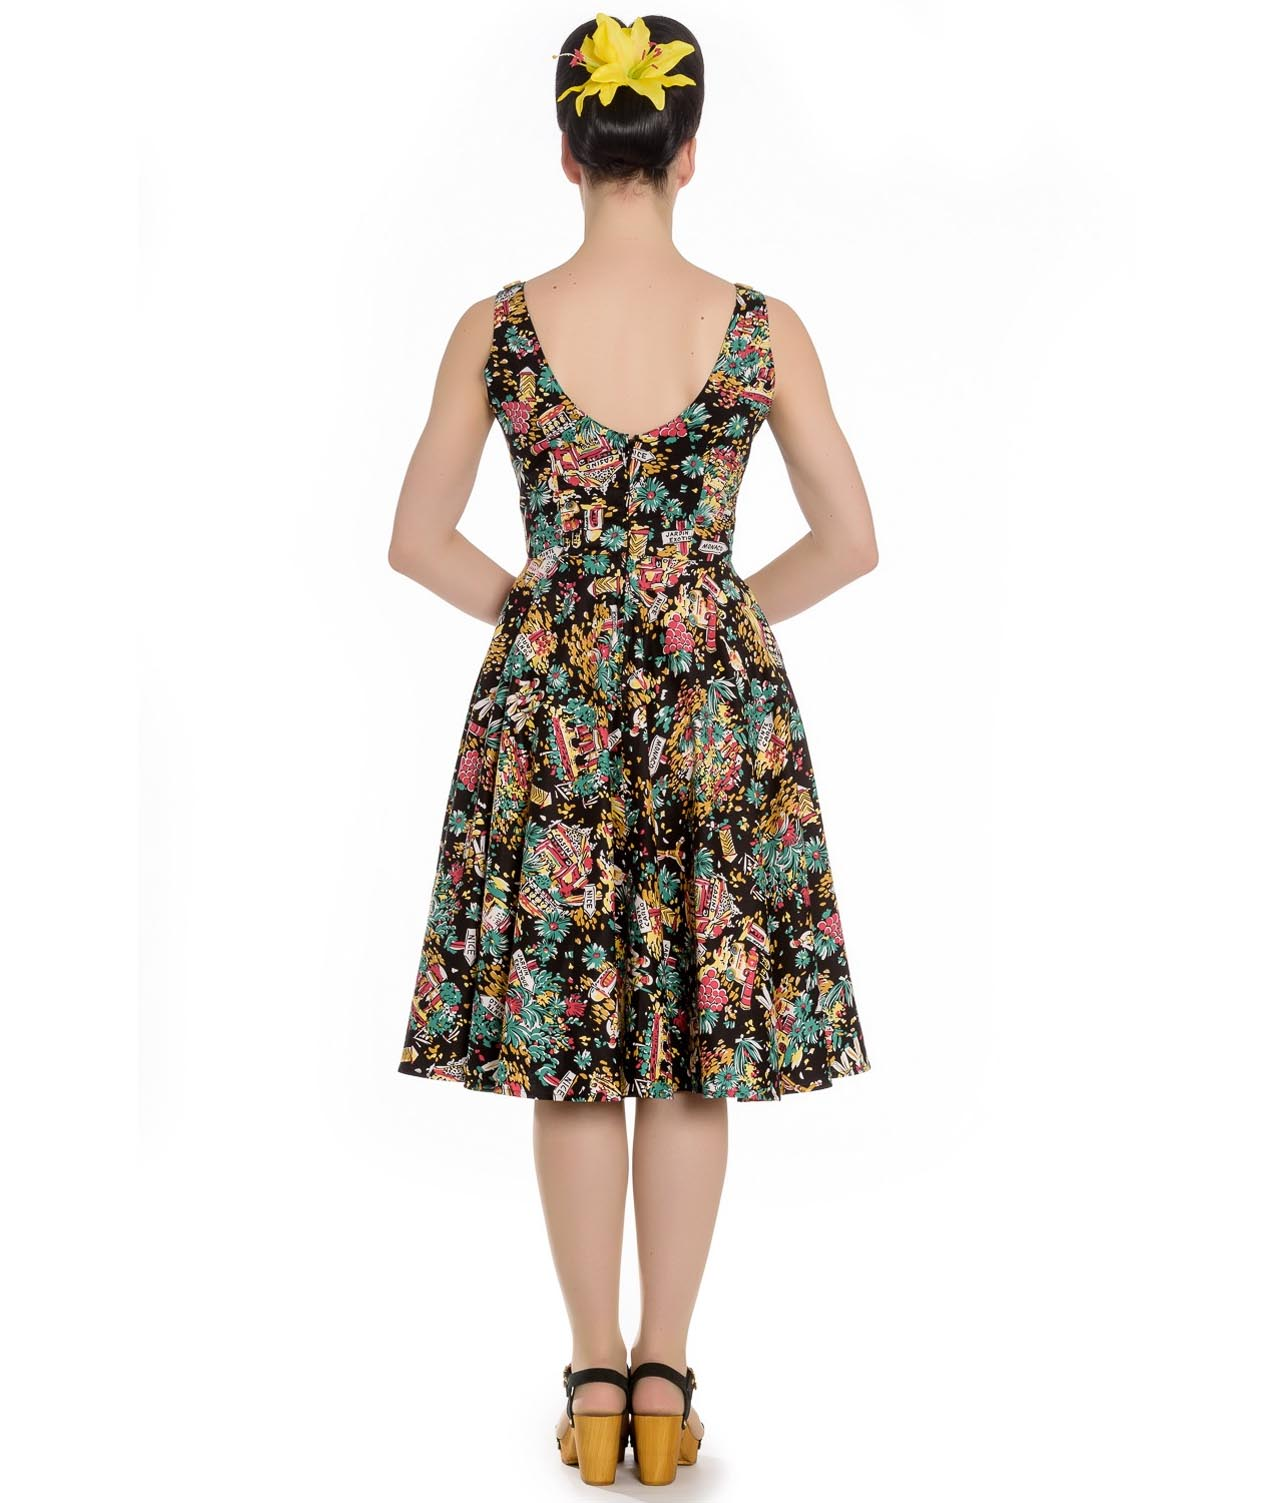 Hell-Bunny-Summer-50s-Black-Dress-MONTE-CARLO-Tropical-Holiday-All-Sizes thumbnail 17